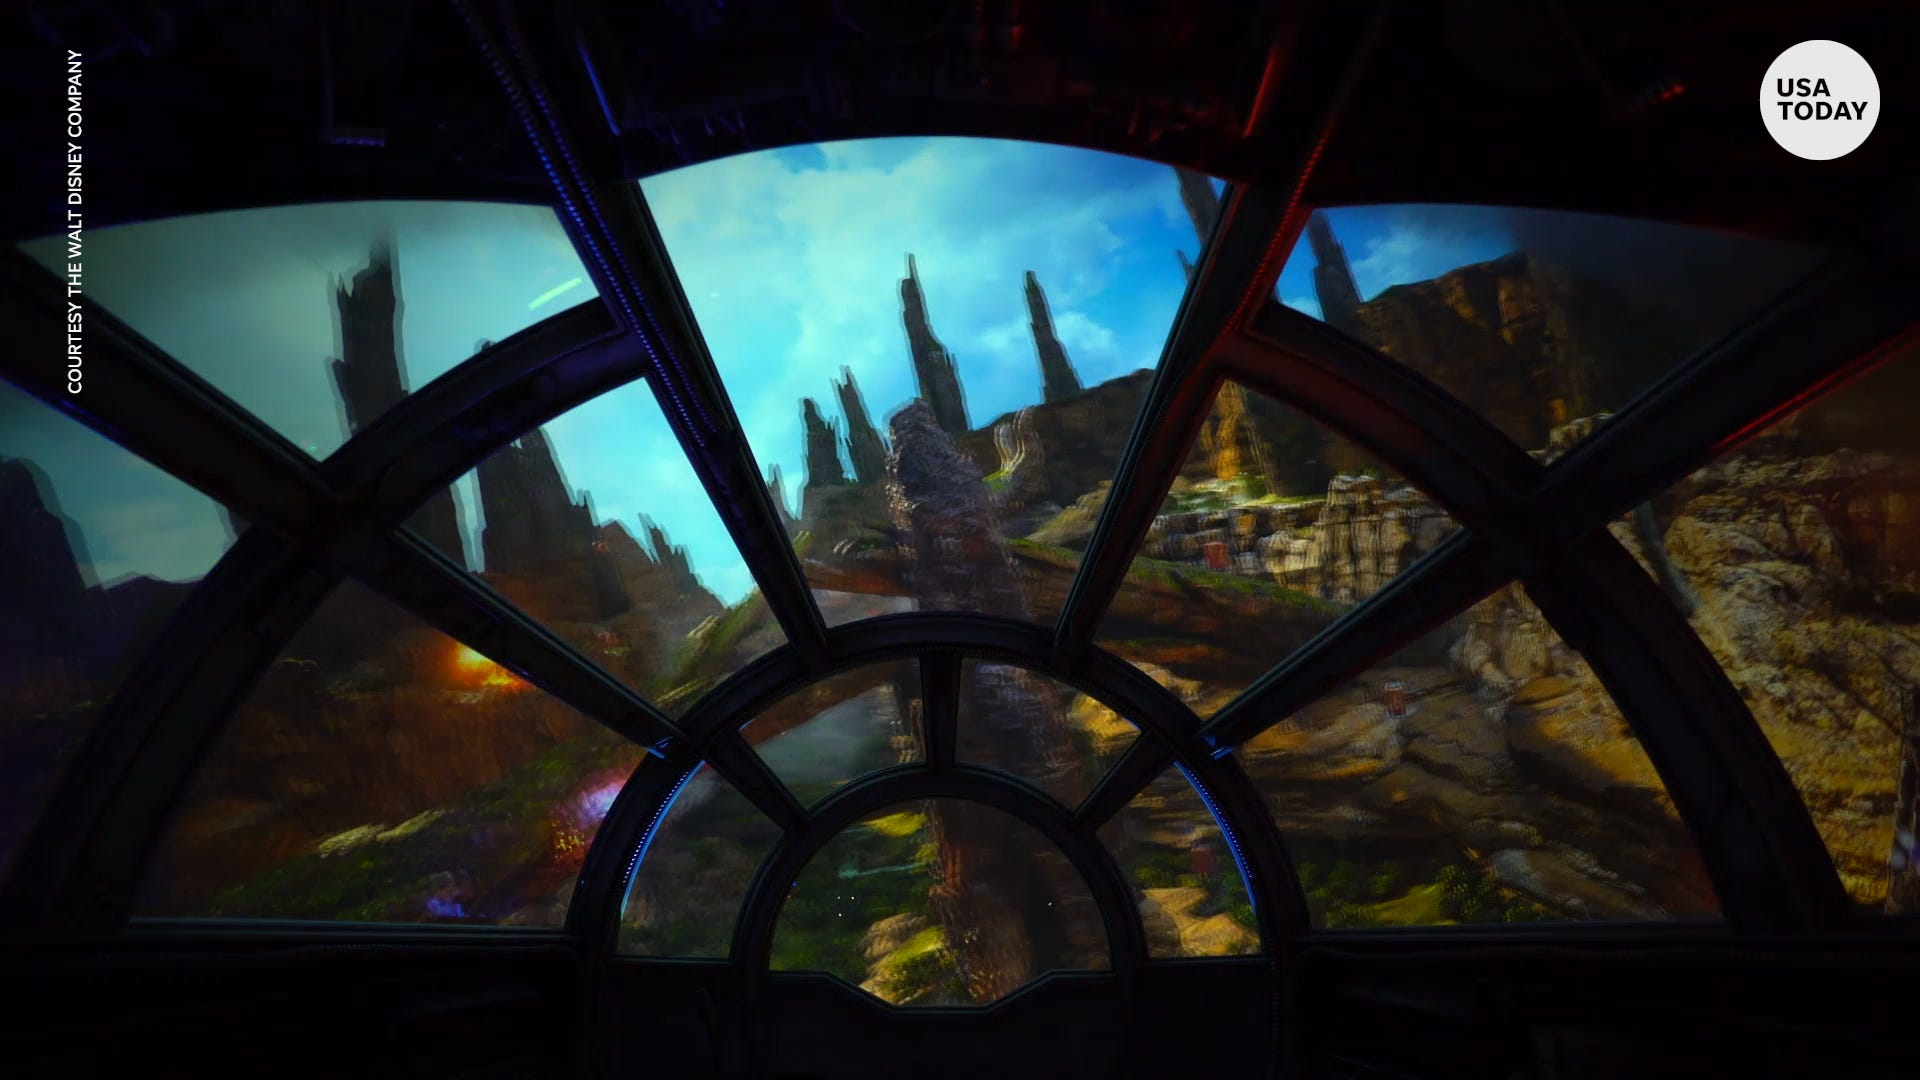 Take a look inside the Millennium Falcon ride at Star Wars: Galaxy's Edge  at Disneyland